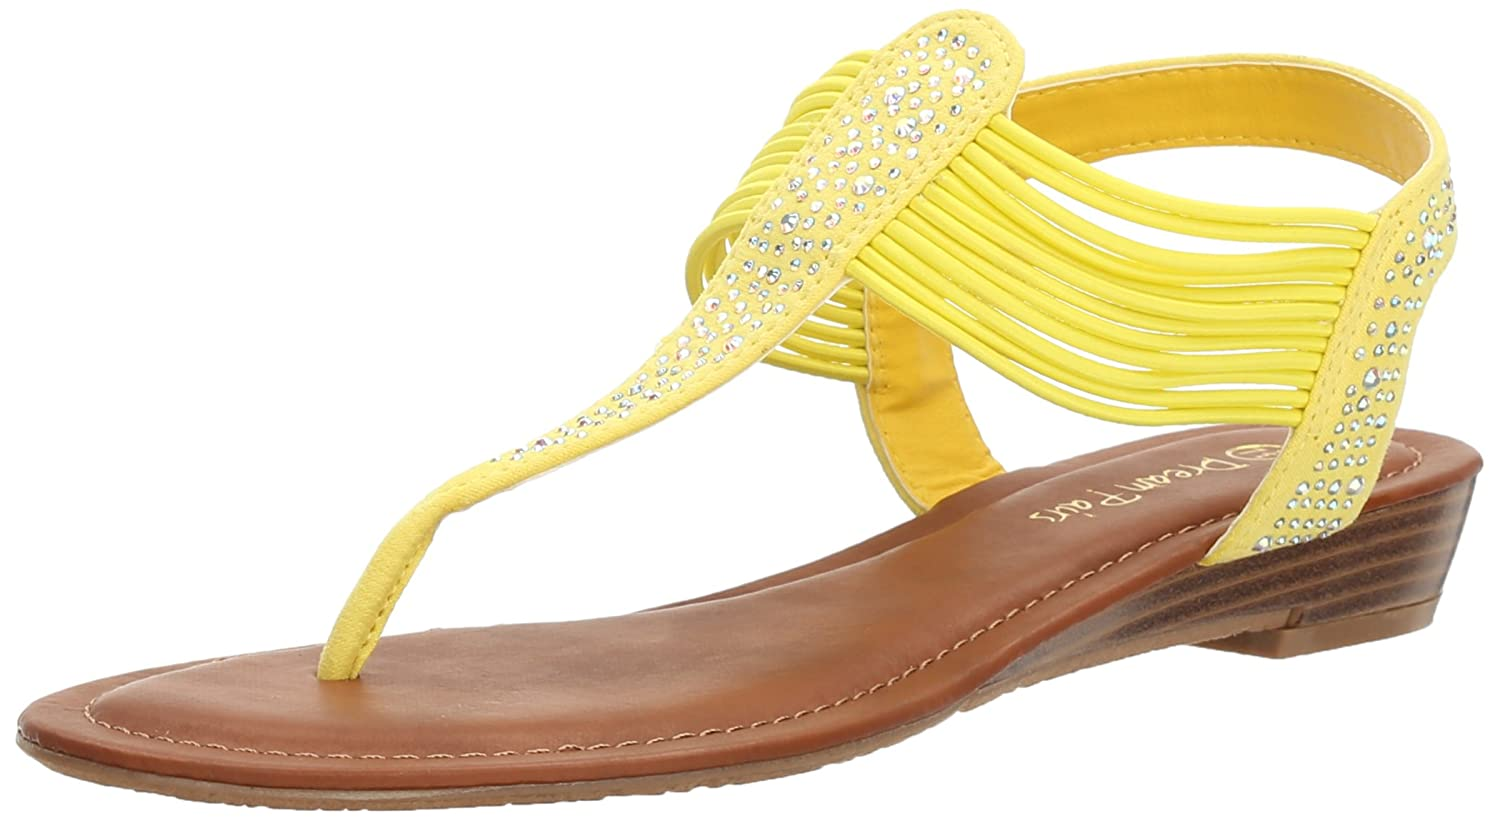 DREAM PAIRS Women's Spark Wedge Sandal B06XDNNYD1 8.5 B(M) US|Yellow Suede